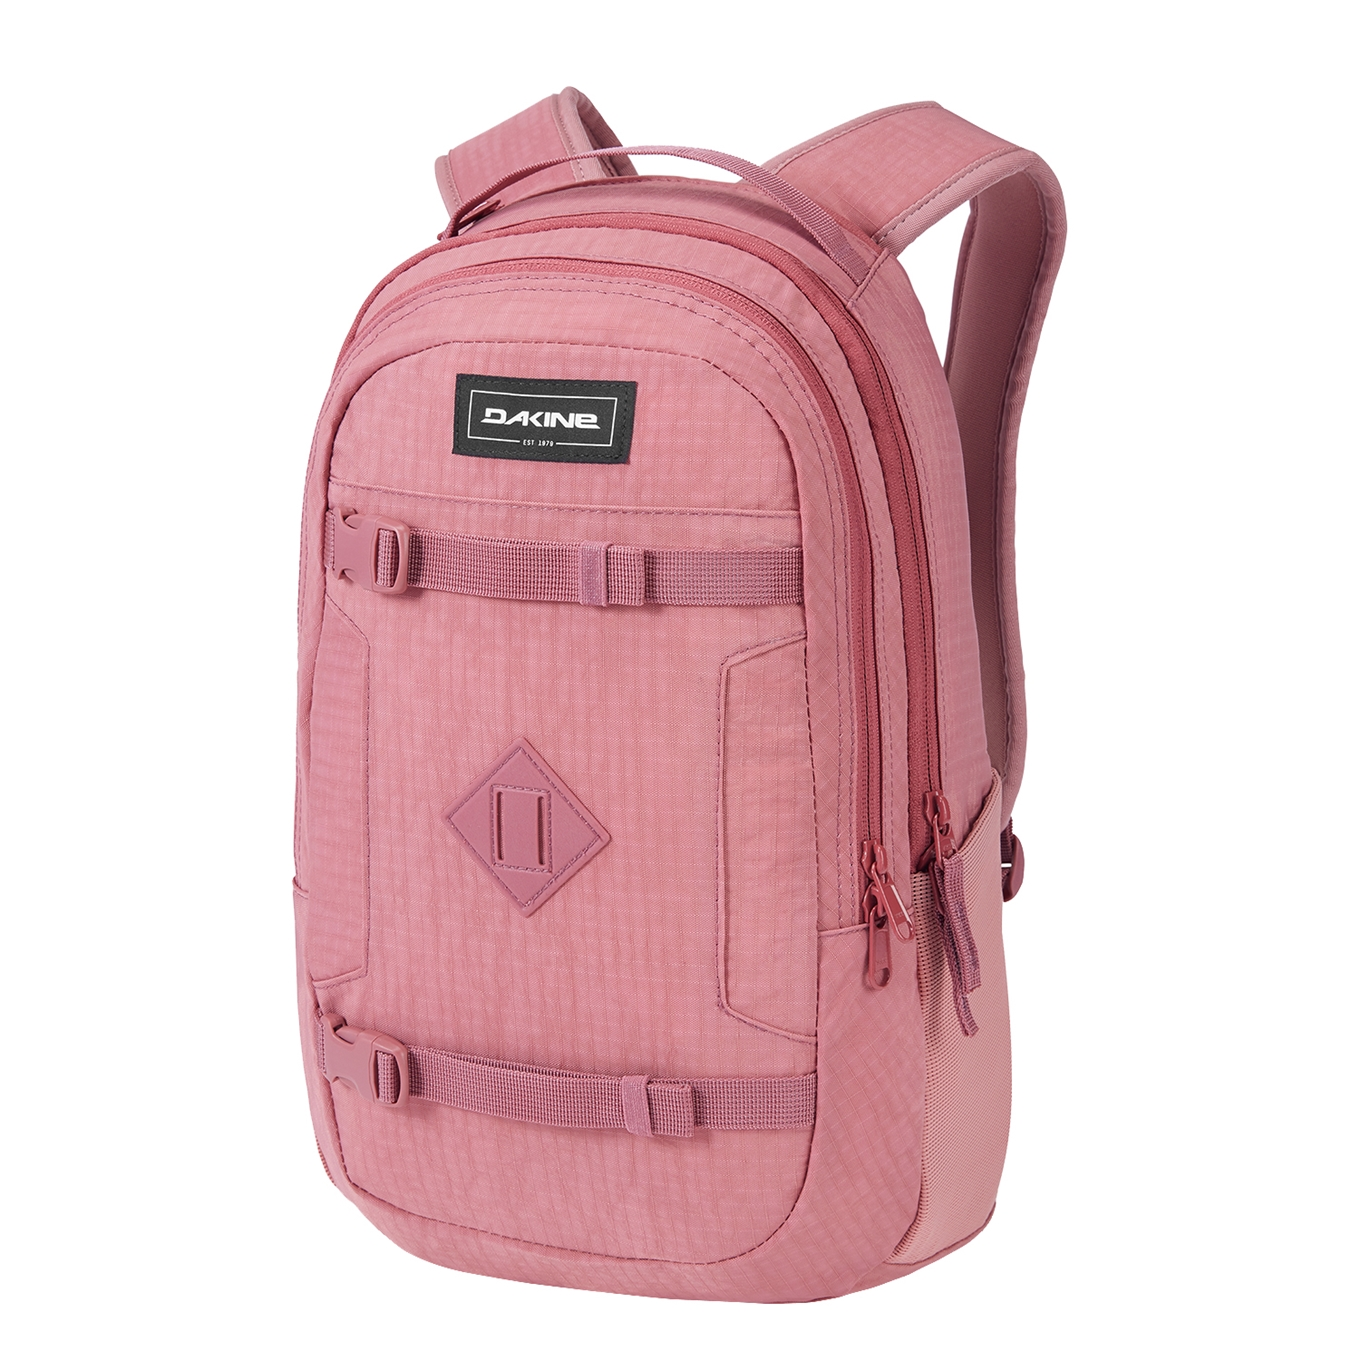 Dakine Urbn Mission Pack 18L faded grape backpack